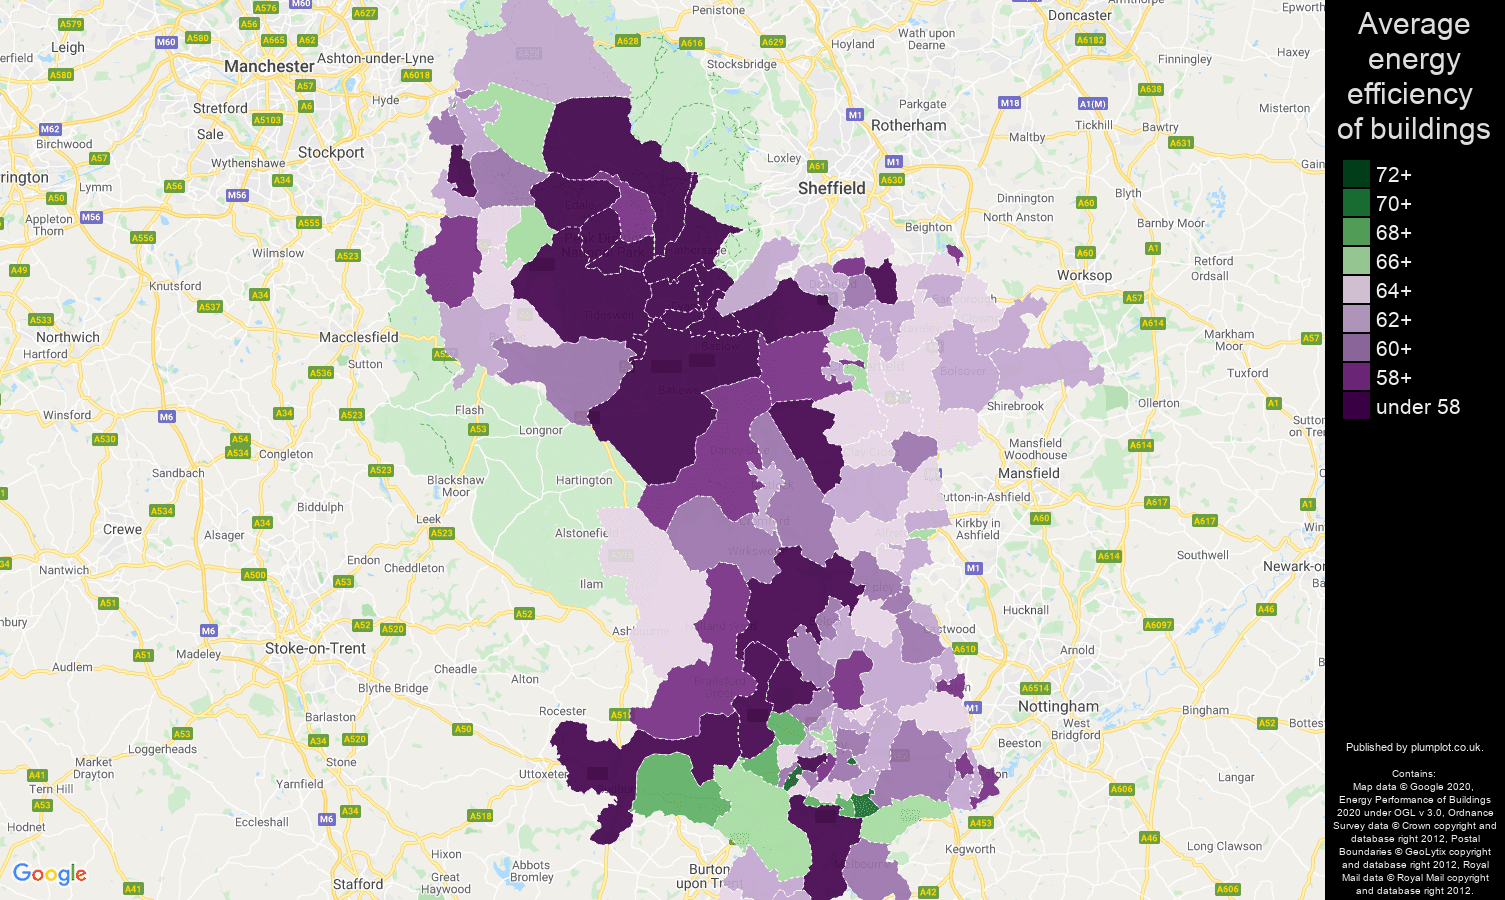 Derbyshire map of energy efficiency of properties